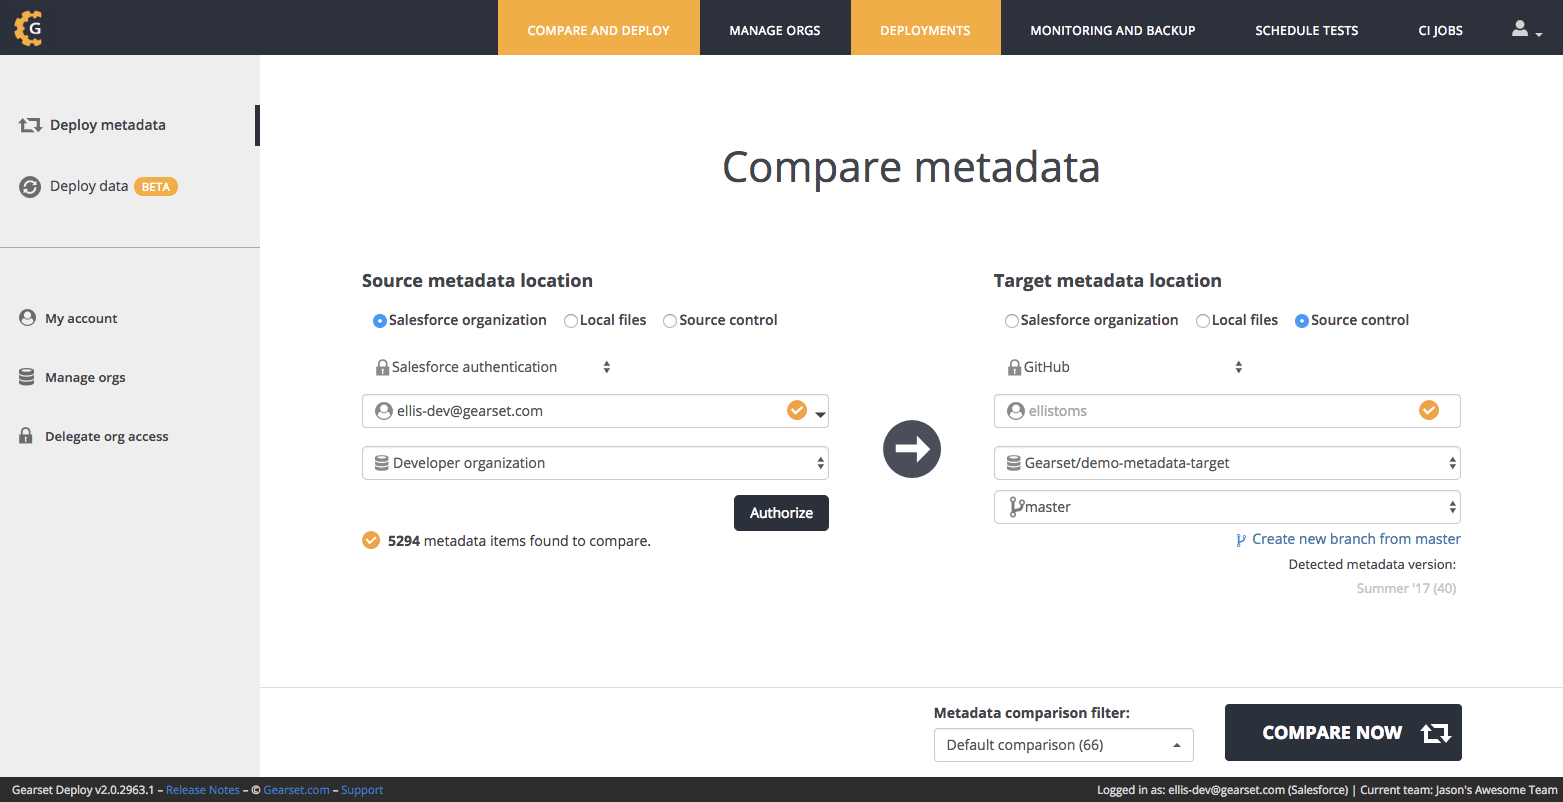 Select source control as your target metadata location and pick a repository to connect